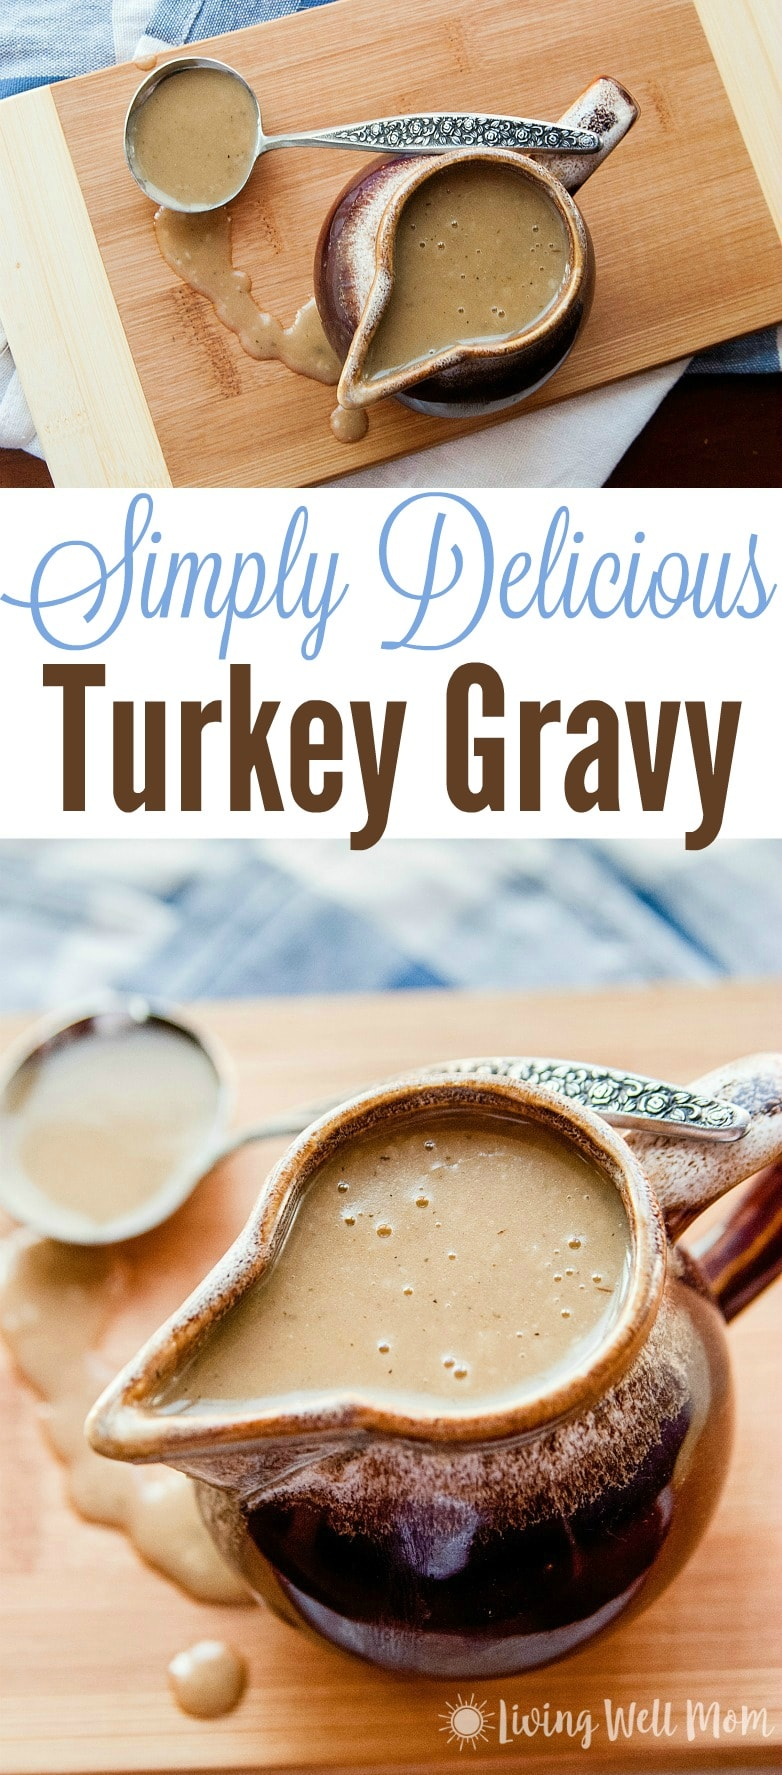 Simply Delicious Turkey Gravy - this recipe is simple to make and tastes amazing. Includes step-by-step directions for those who are new to gravy making.